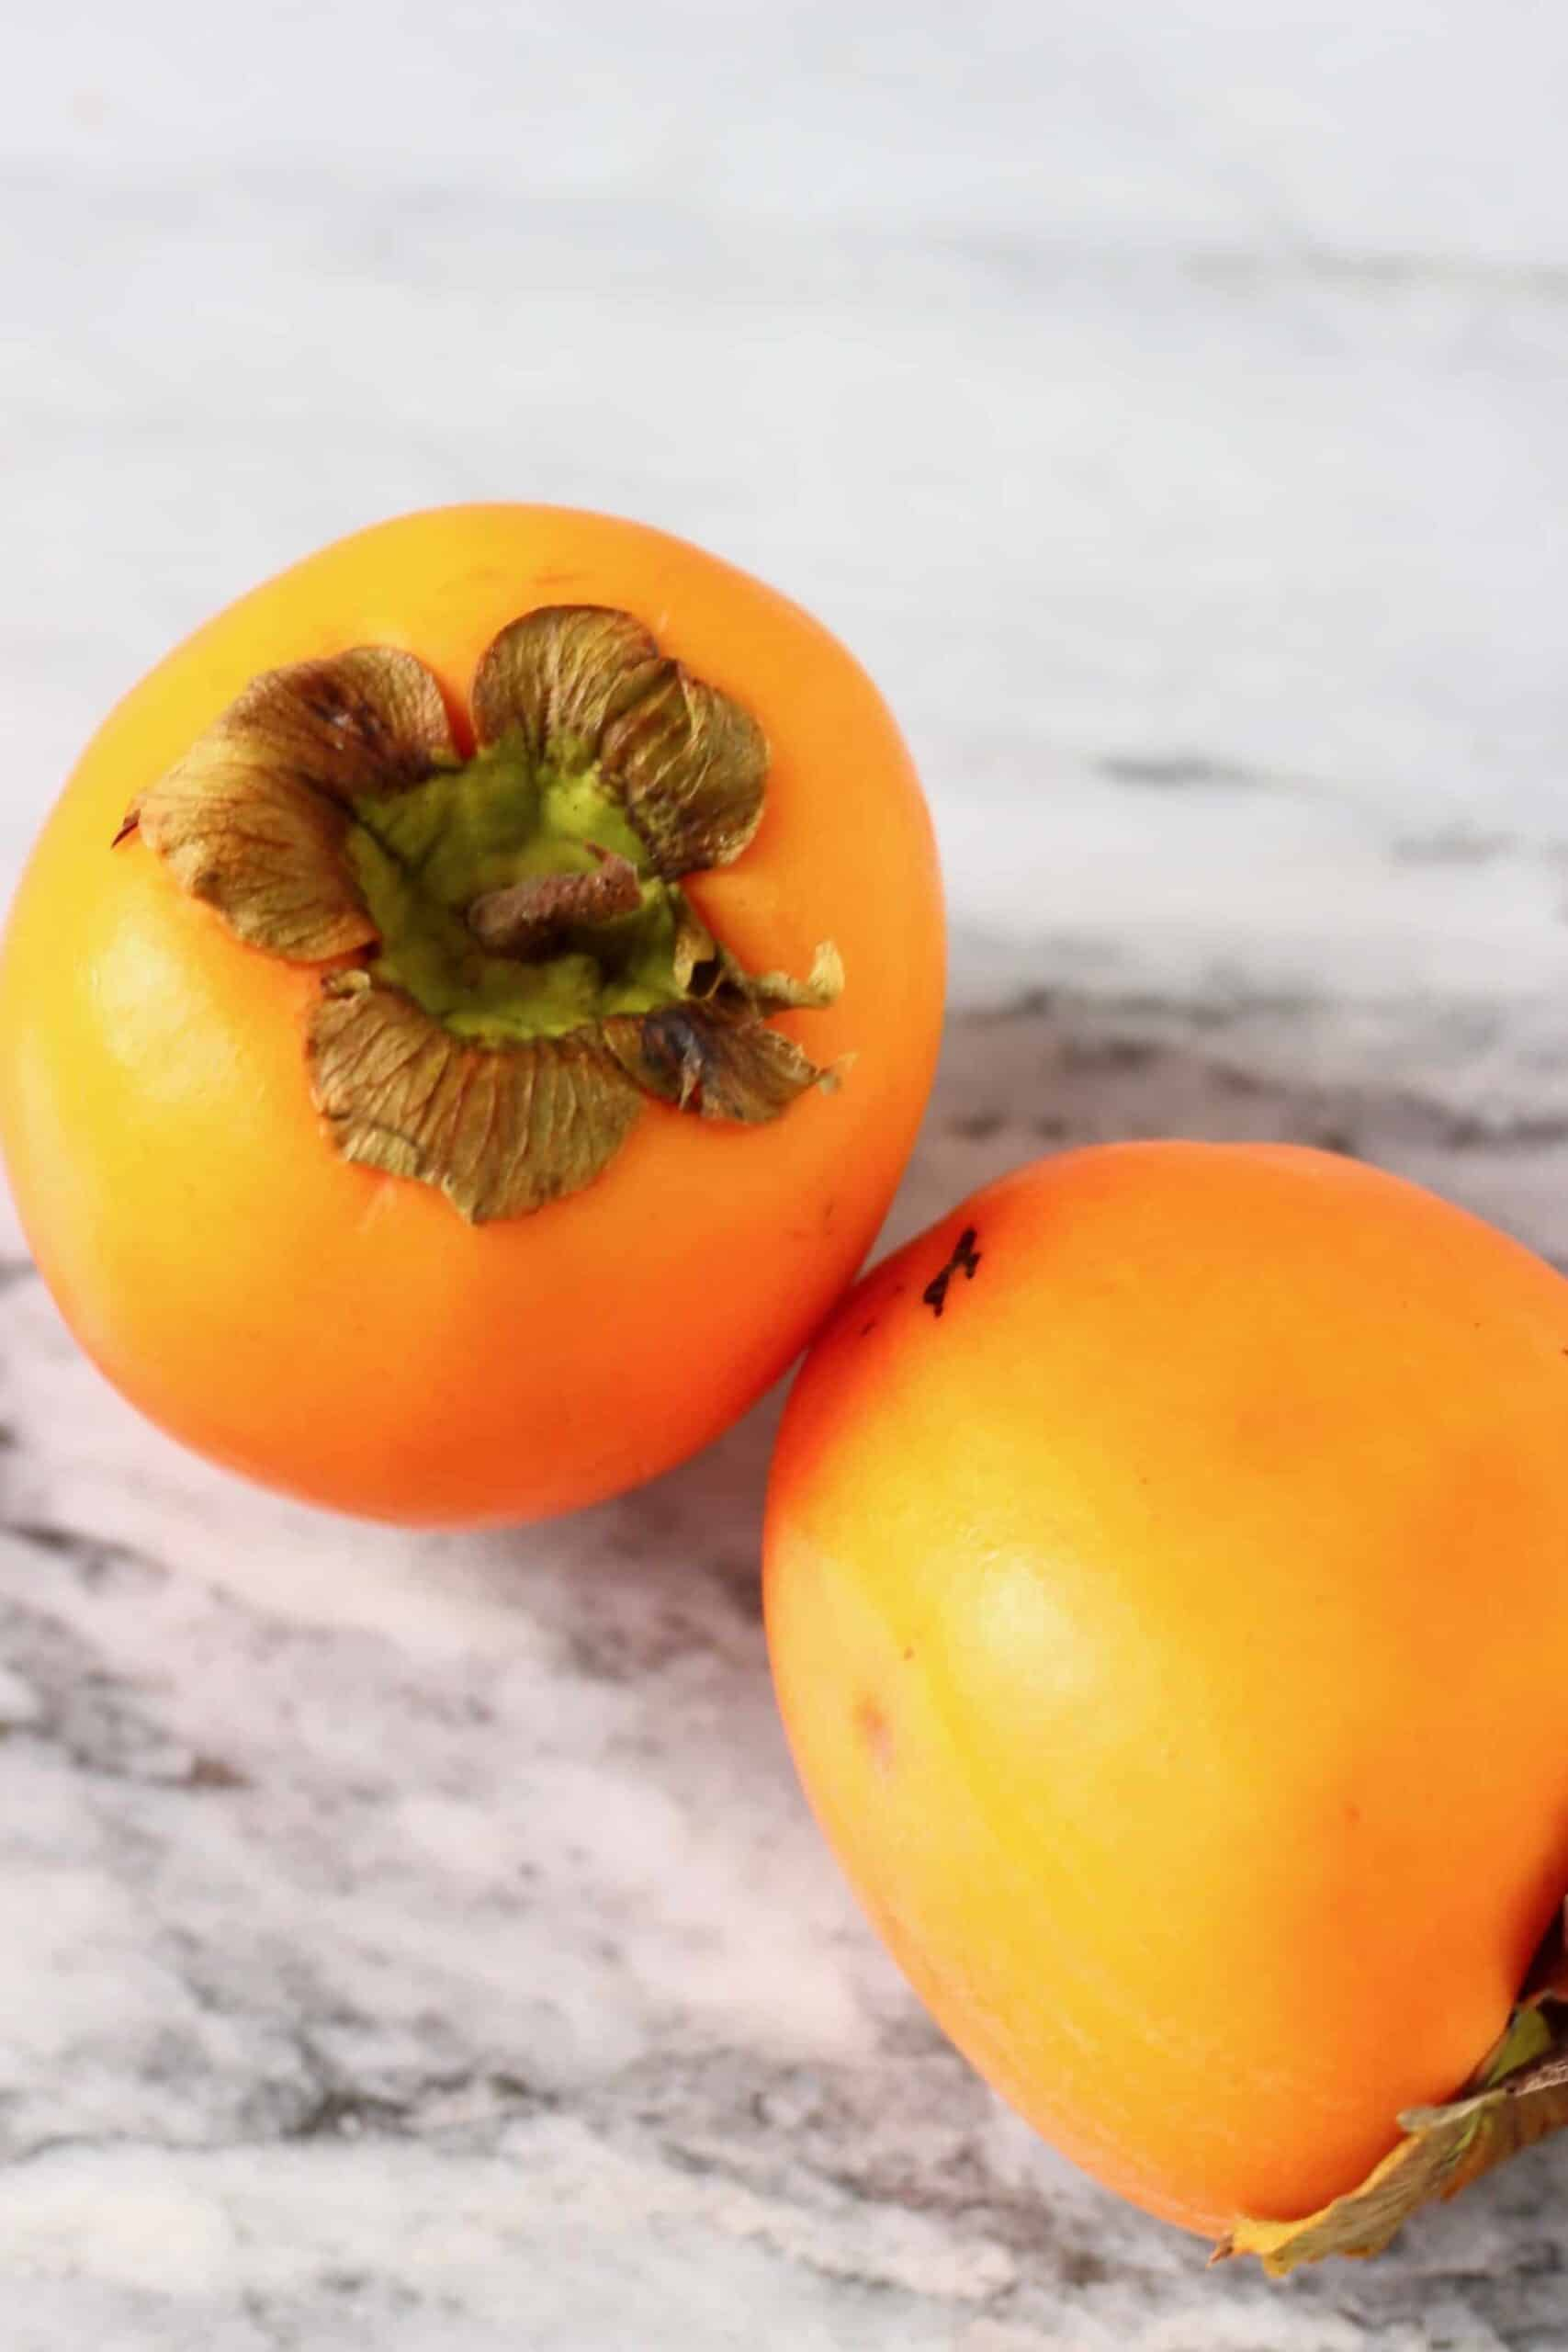 Two persimmons on a marble background